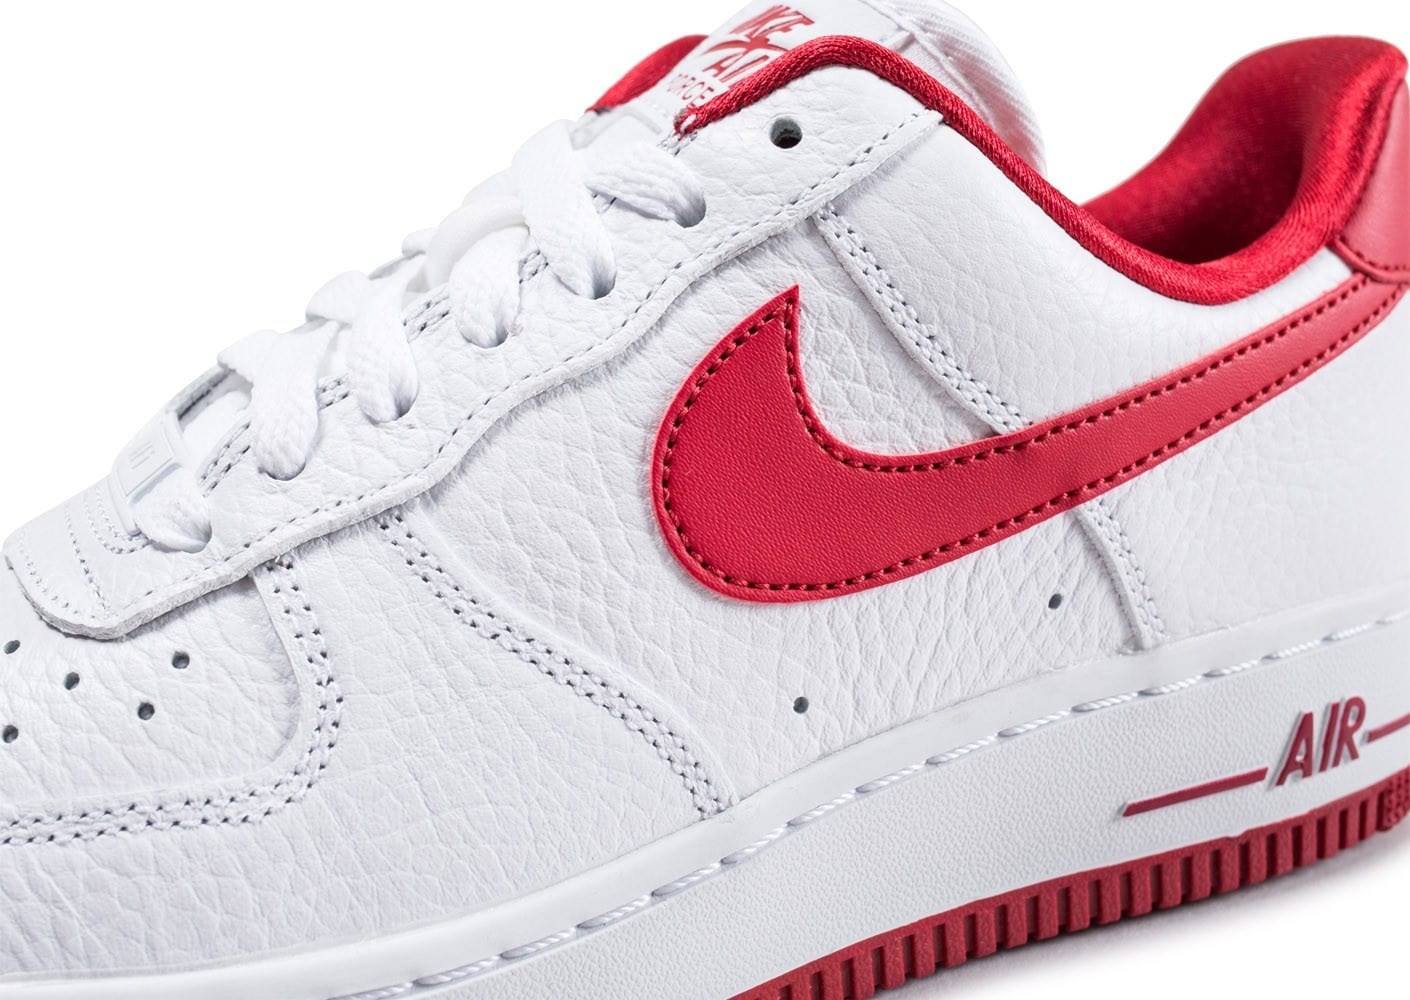 Nike Air Force 1 Low blanche et rouge - Chaussures Baskets ...